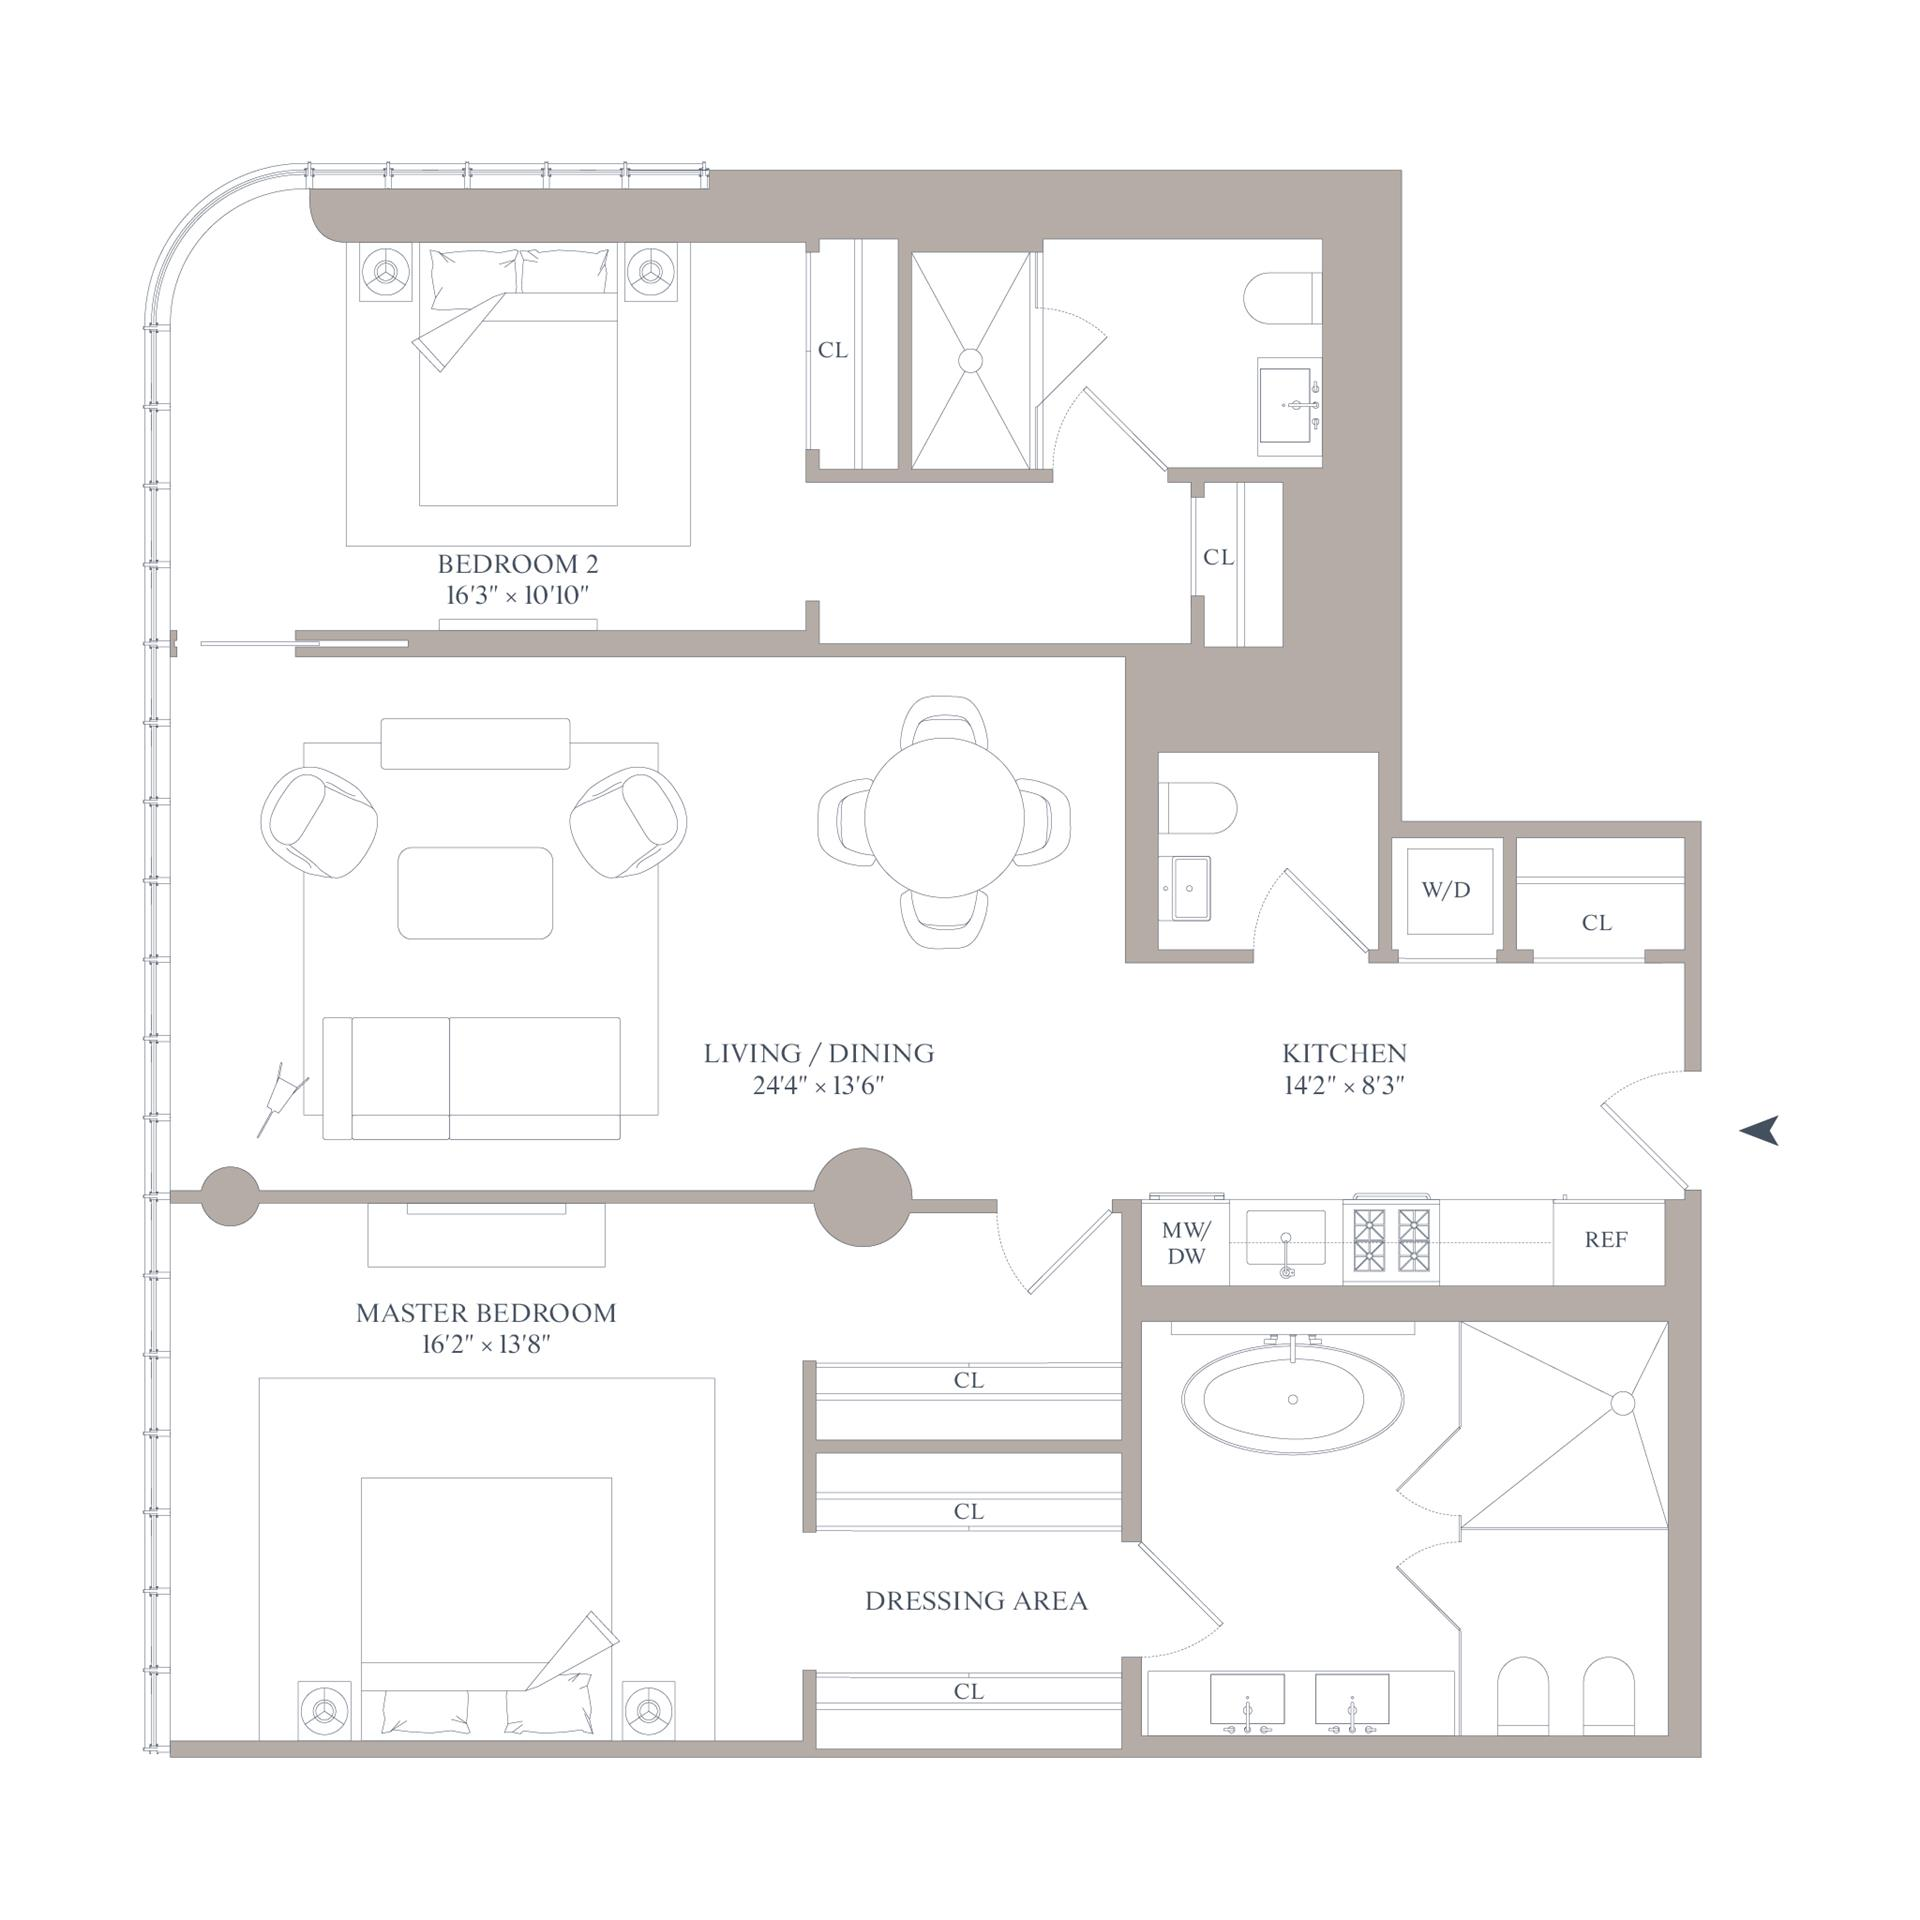 Floor plan of 565 Broome St, S12A - SoHo - Nolita, New York